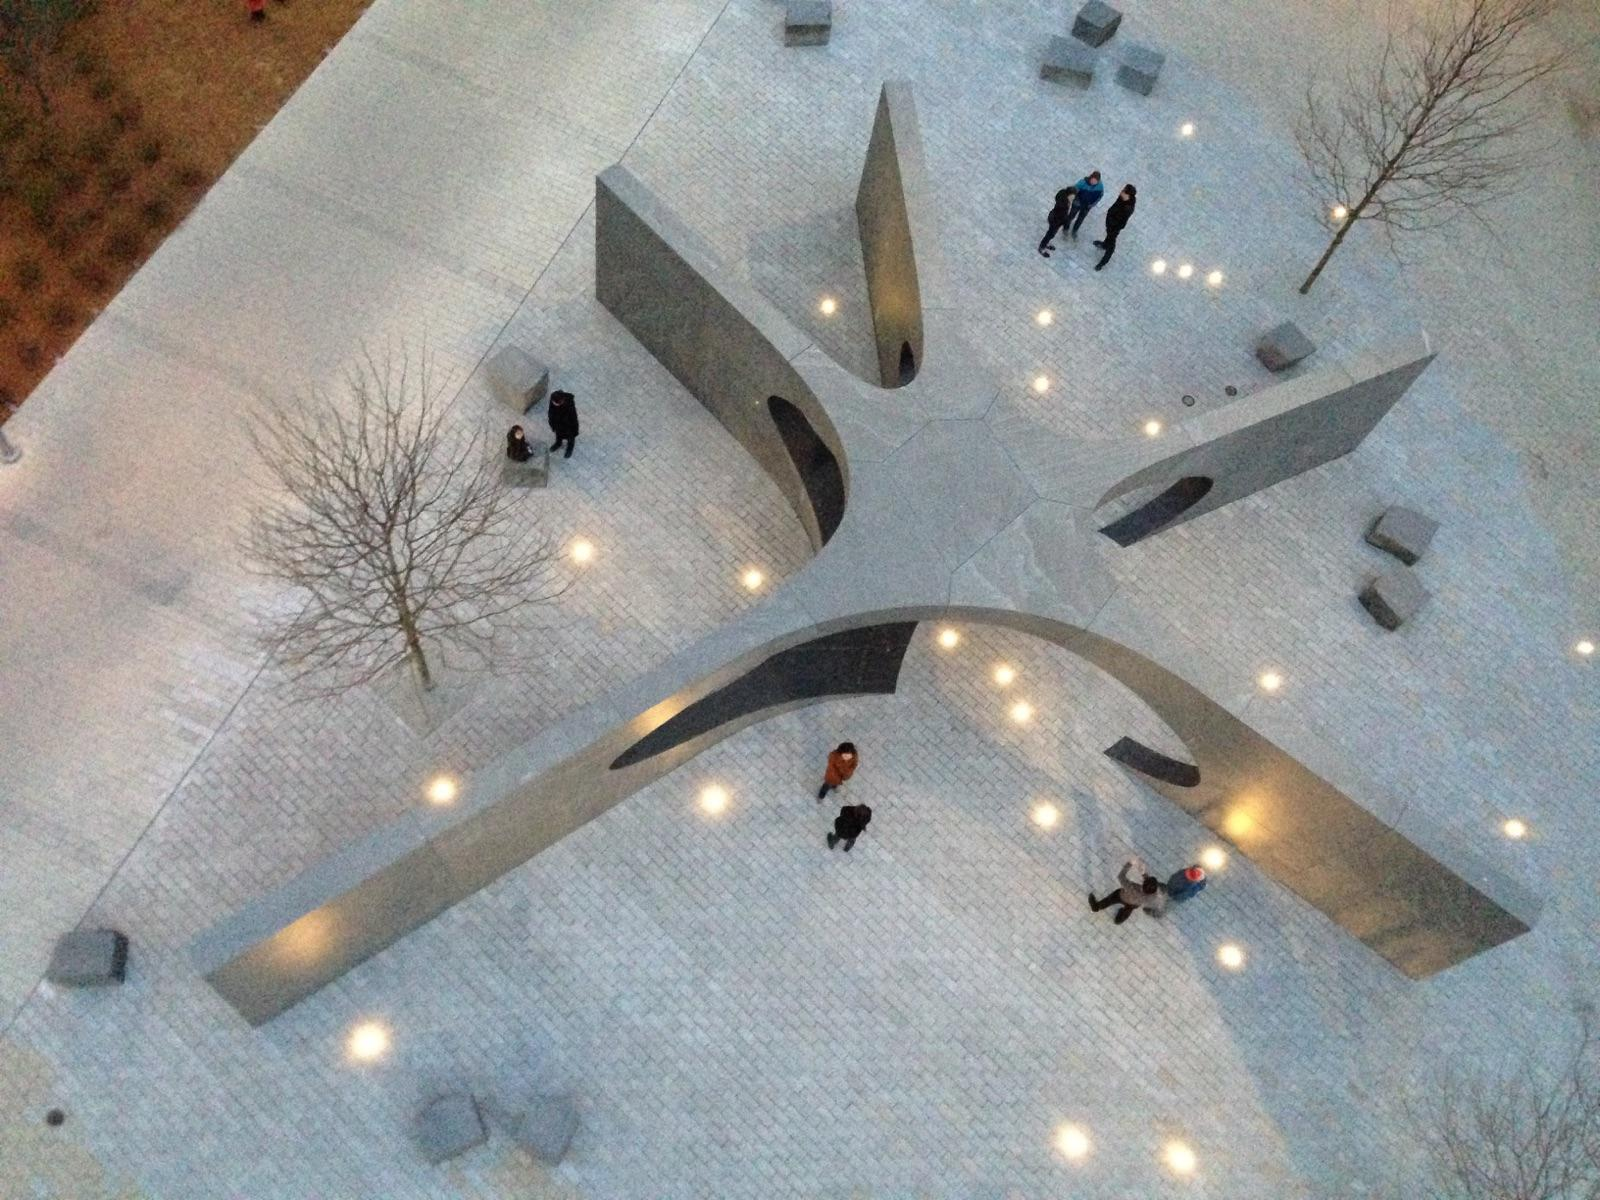 Collier Strong: MIT's Sean Collier Memorial sets structural